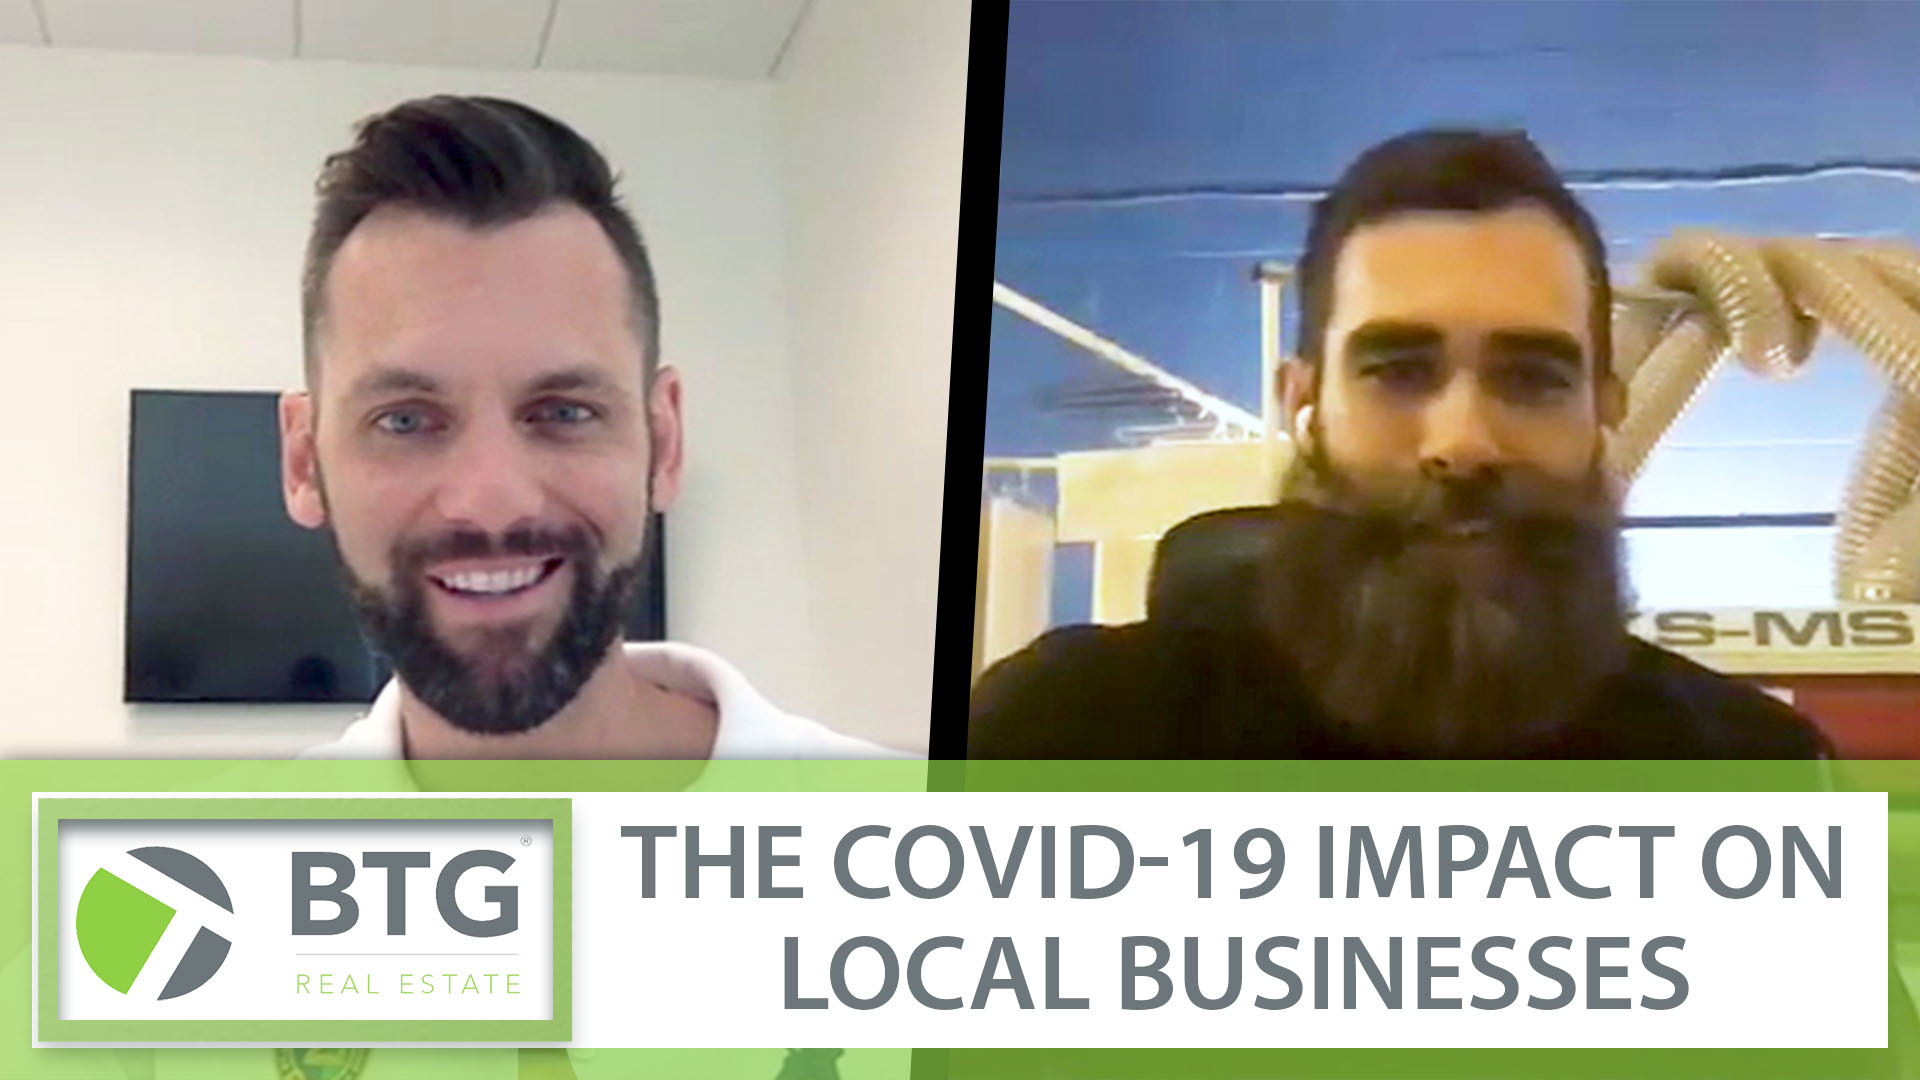 How Have Local Businesses Been Affected by COVID-19?